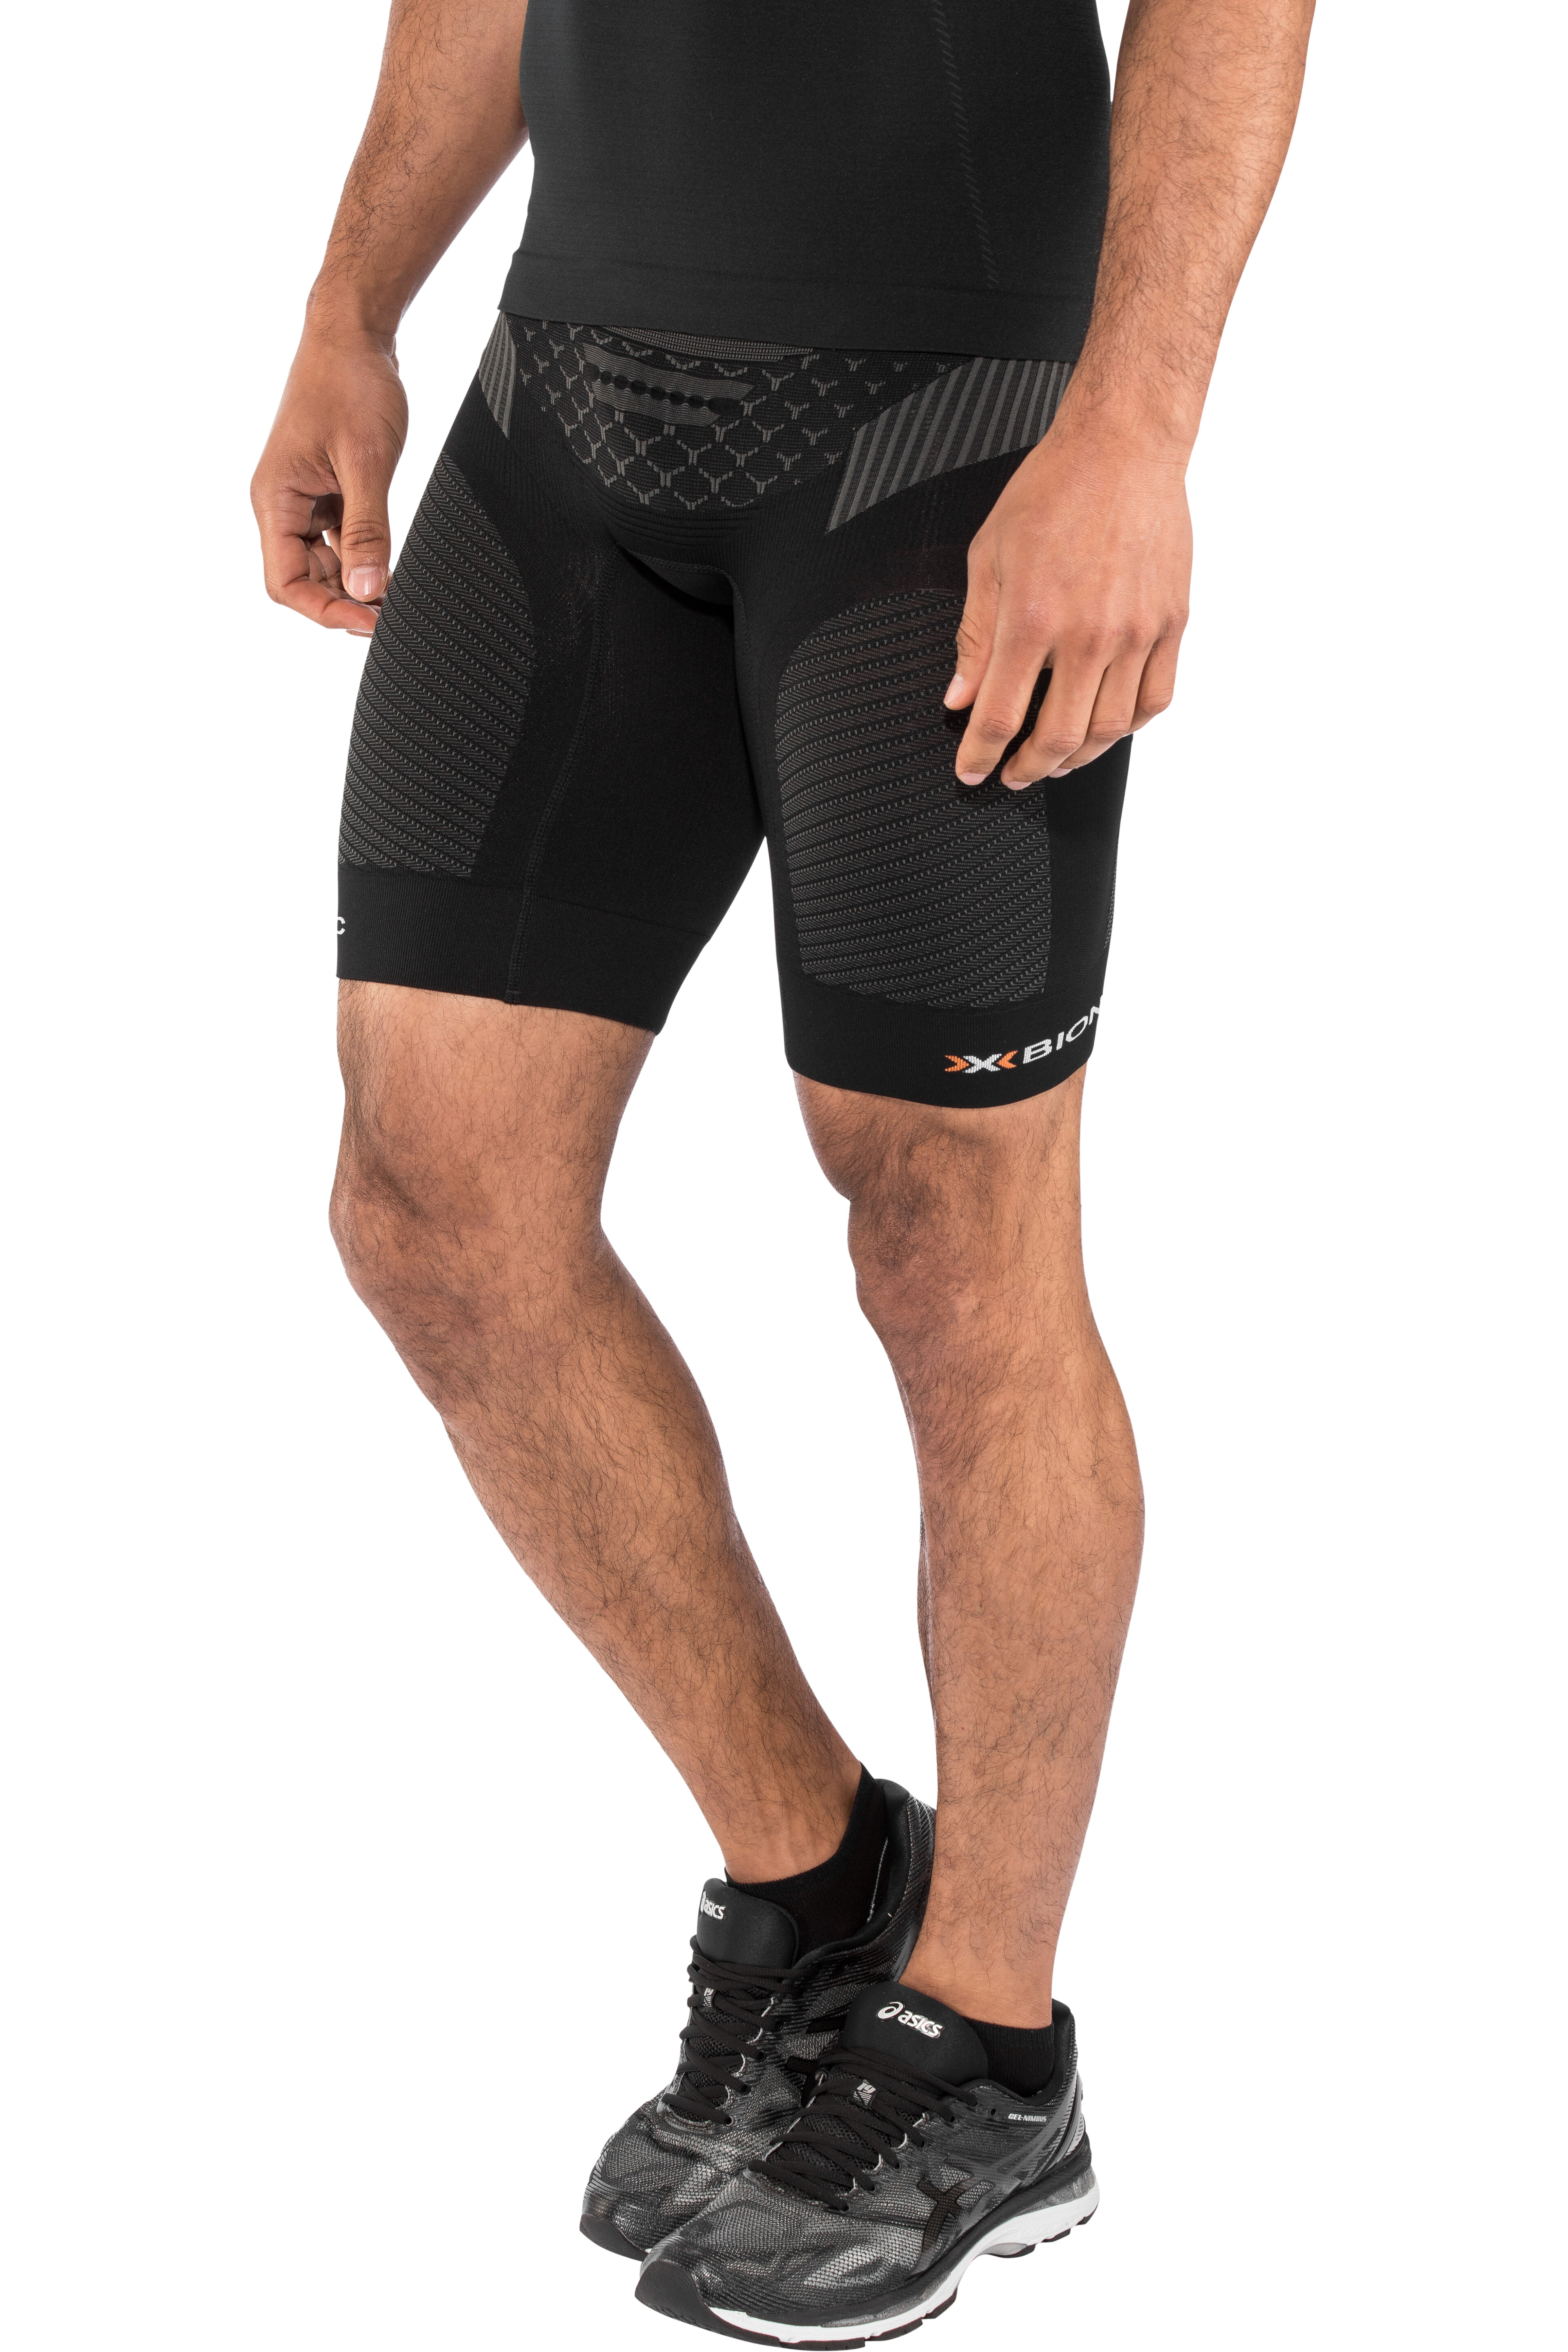 cbc53c916 X-Bionic Twyce OW Big Pocket Pantalones cortos running Hombre,  black/anthracite